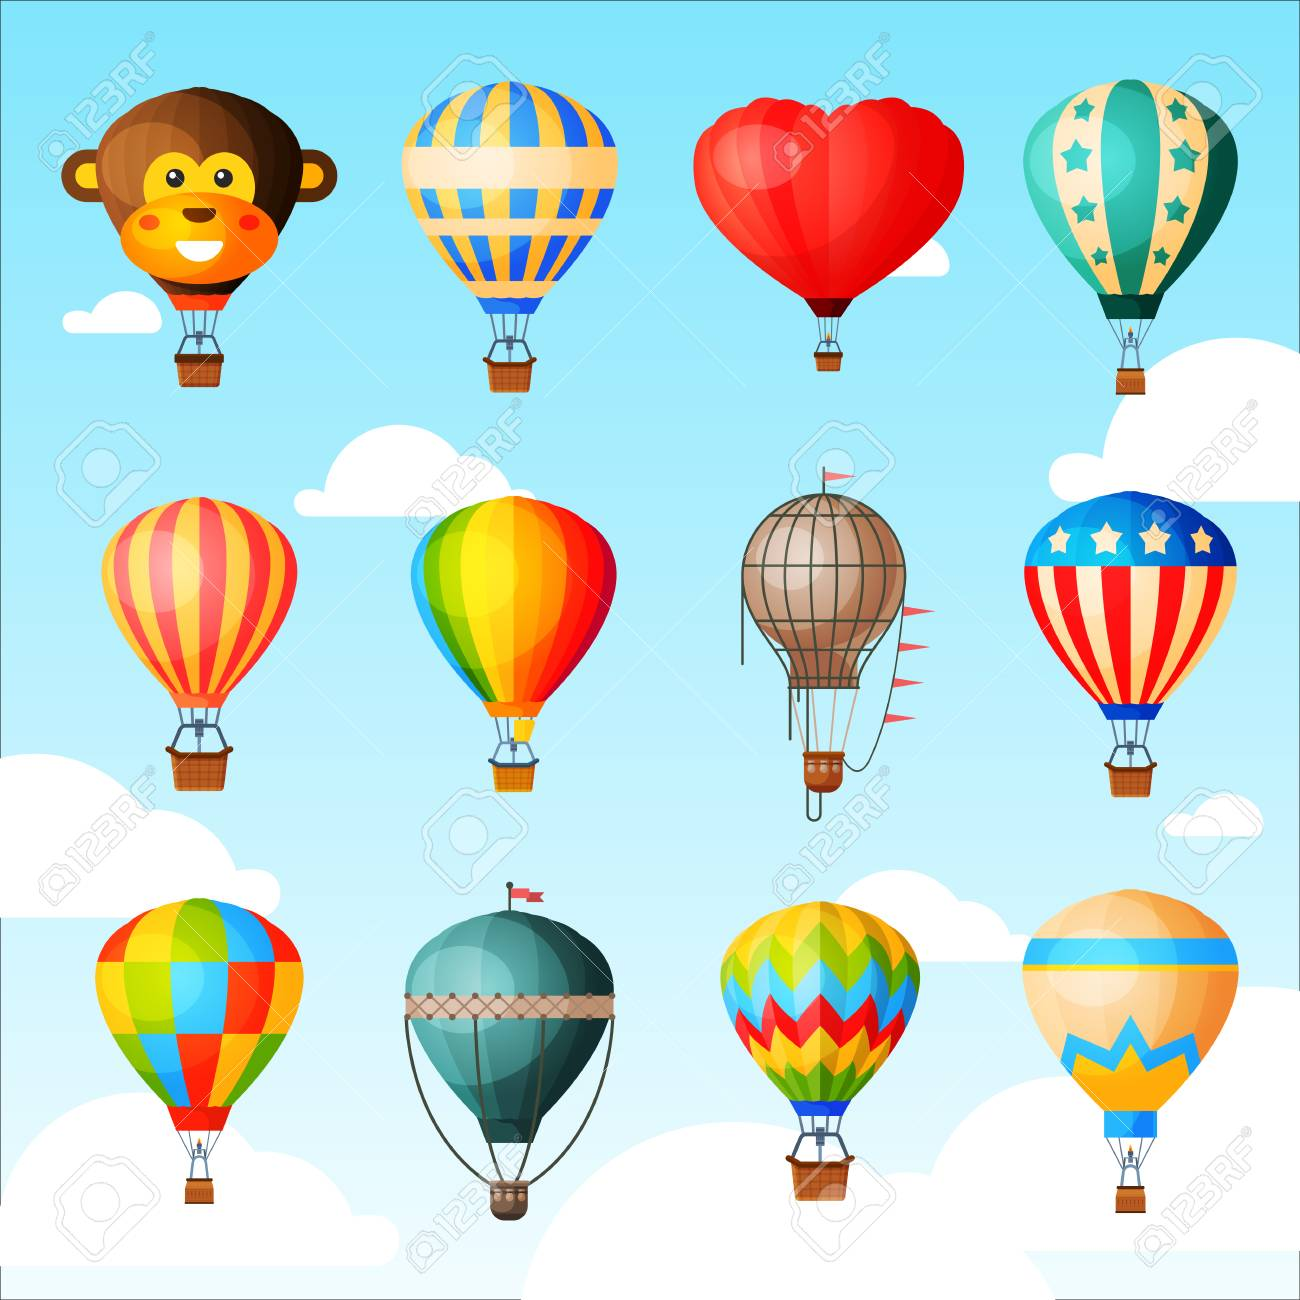 Balloon vector cartoon air-balloon or aerostat with basket flying in sky and ballooning adventure flight illustration set of ballooned traveling isolated on background - 102691163